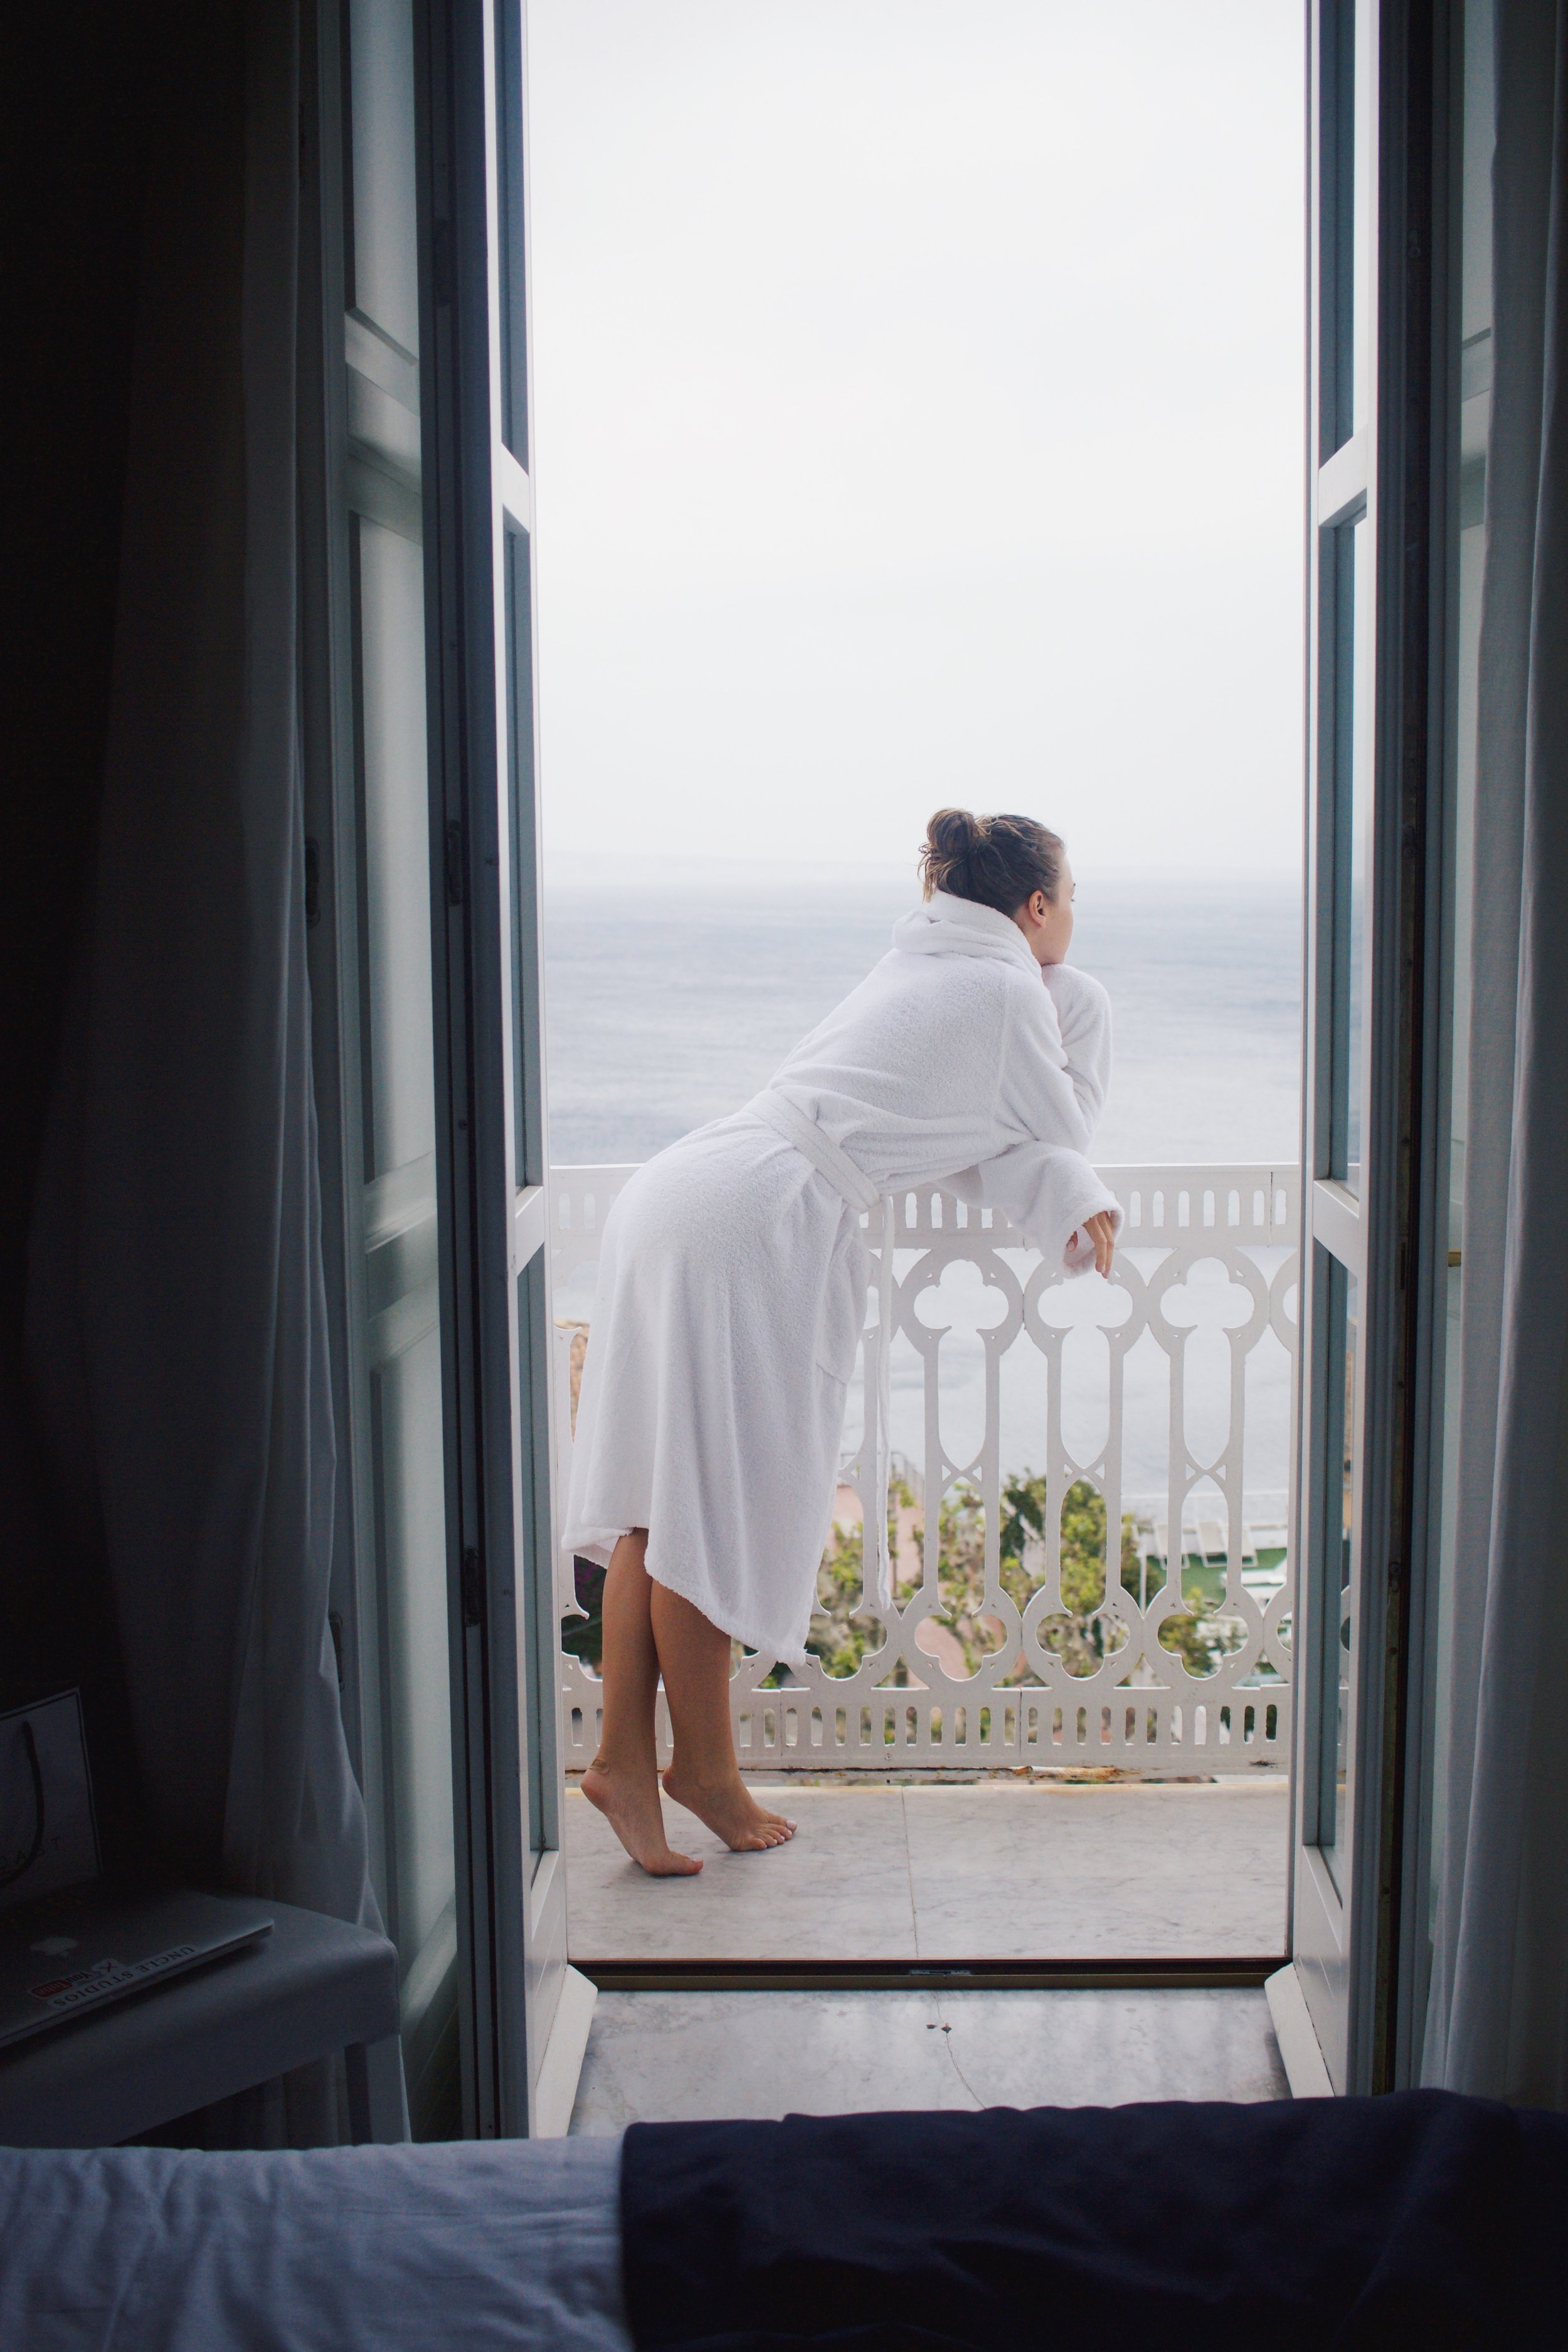 Robe life on our private balcony